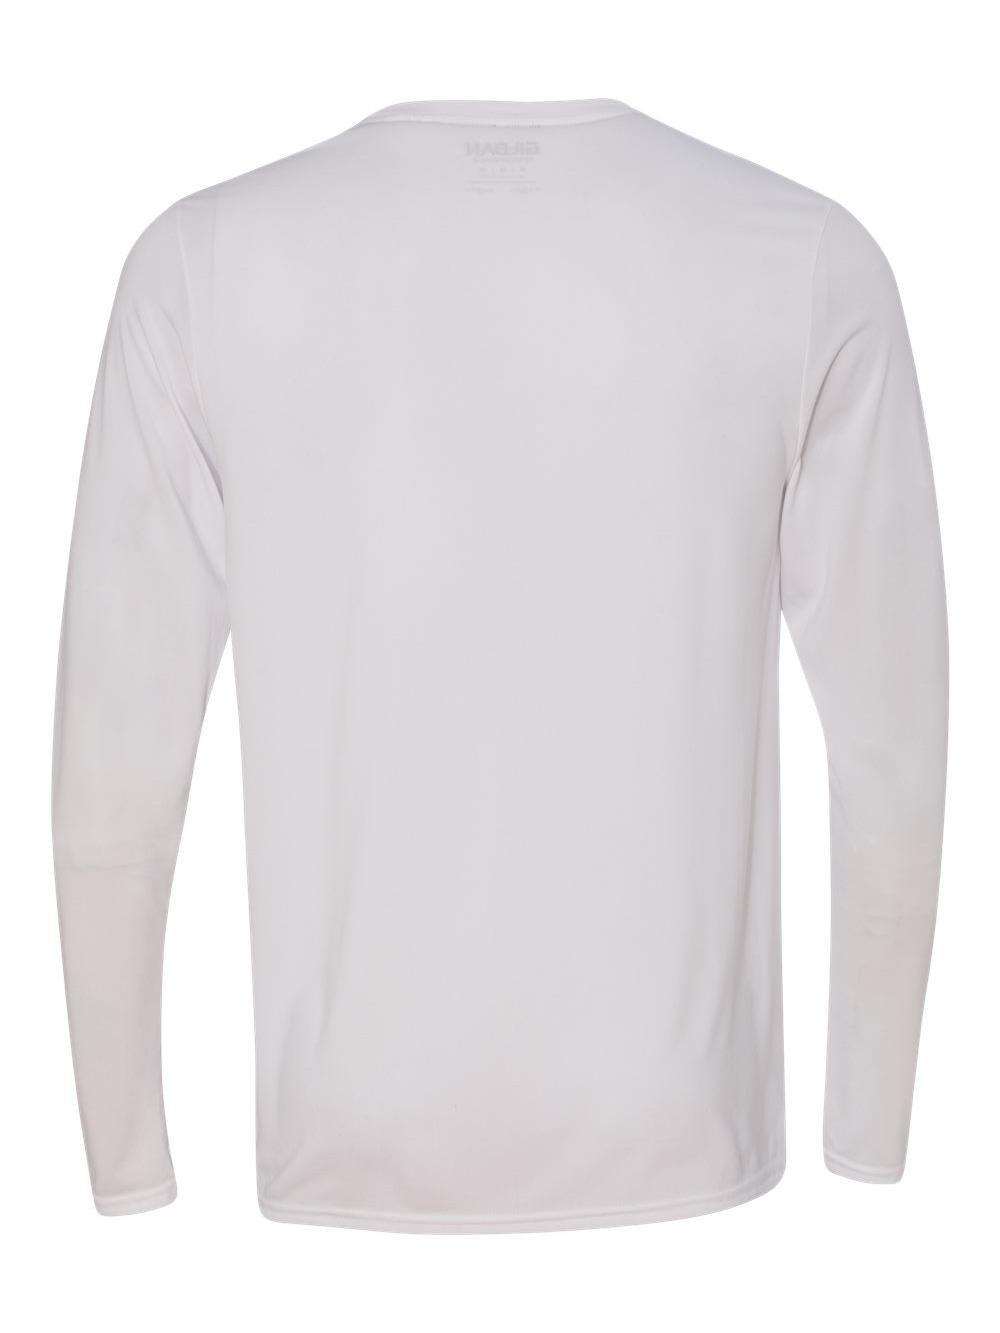 Gildan-Tech-Performance-Long-Sleeve-T-Shirt-47400 thumbnail 25